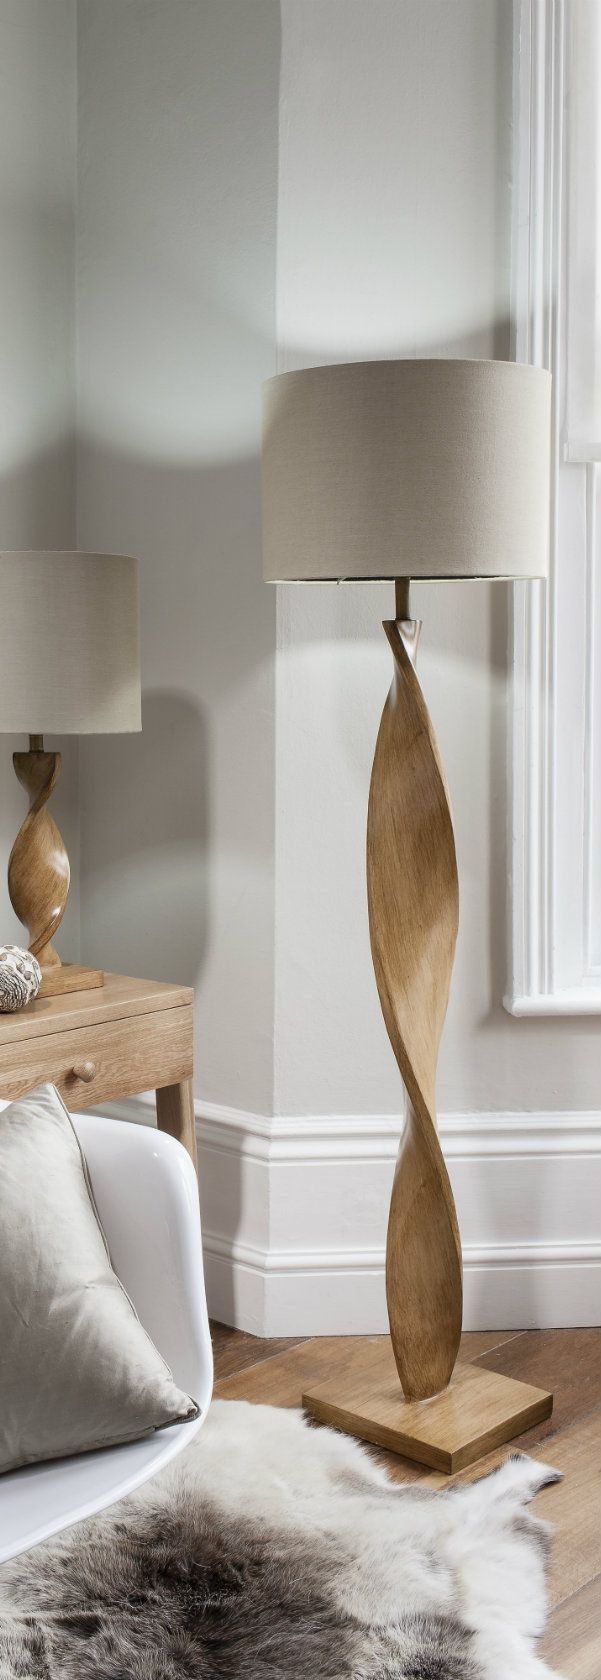 Argenta 160cm twisting wood floor lamp  Ideas For Living RoomLiving. Best 25  Floor lamps ideas on Pinterest   Floor lamp  Floor lamps